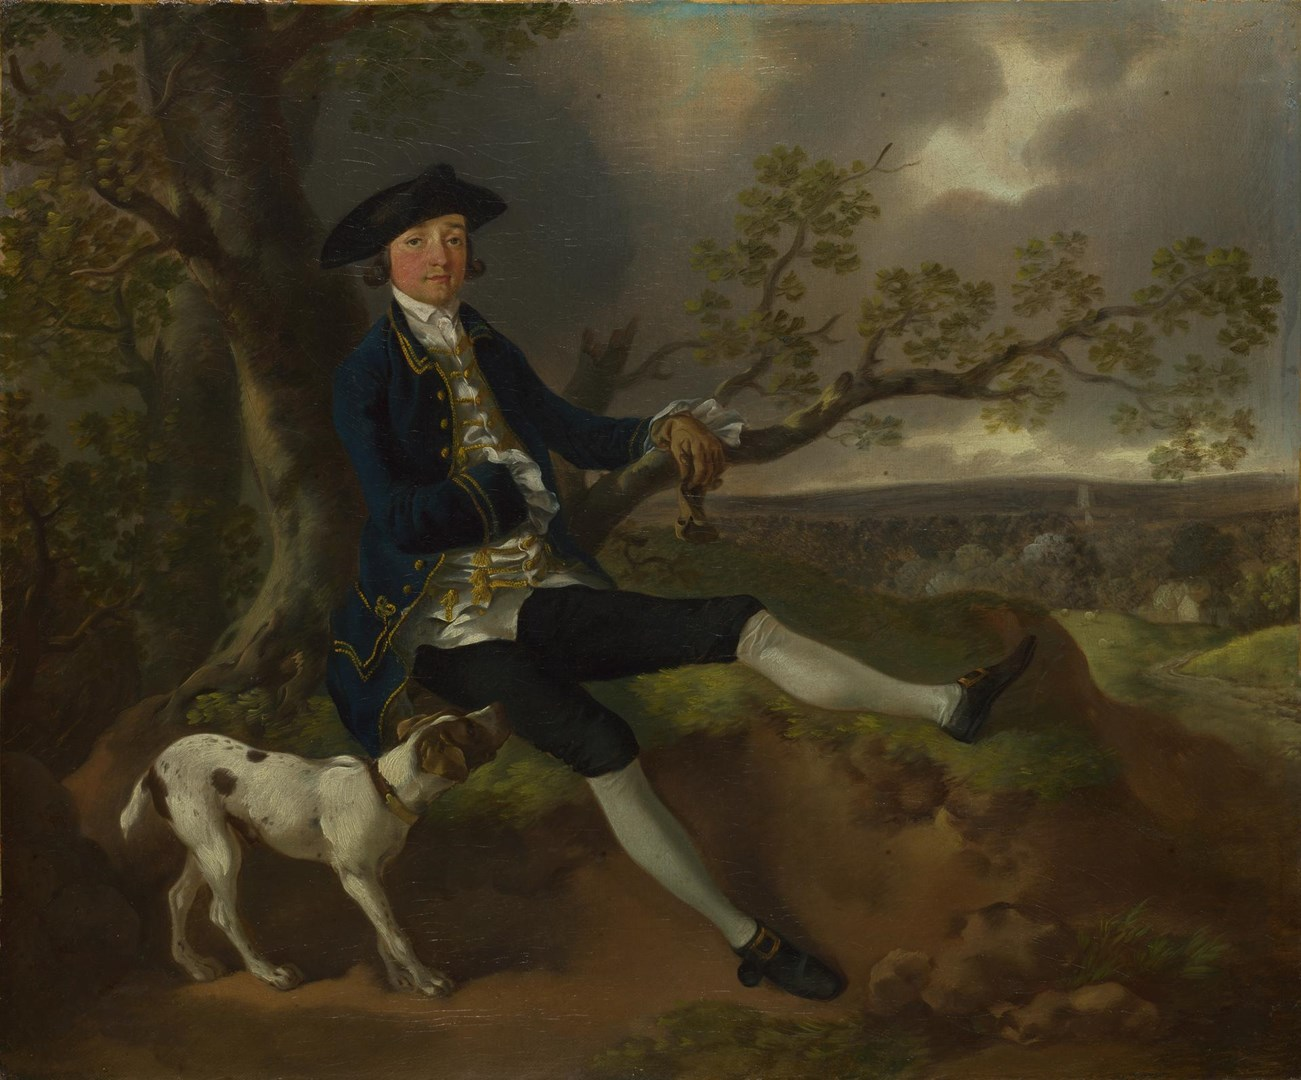 John Plampin by Thomas Gainsborough